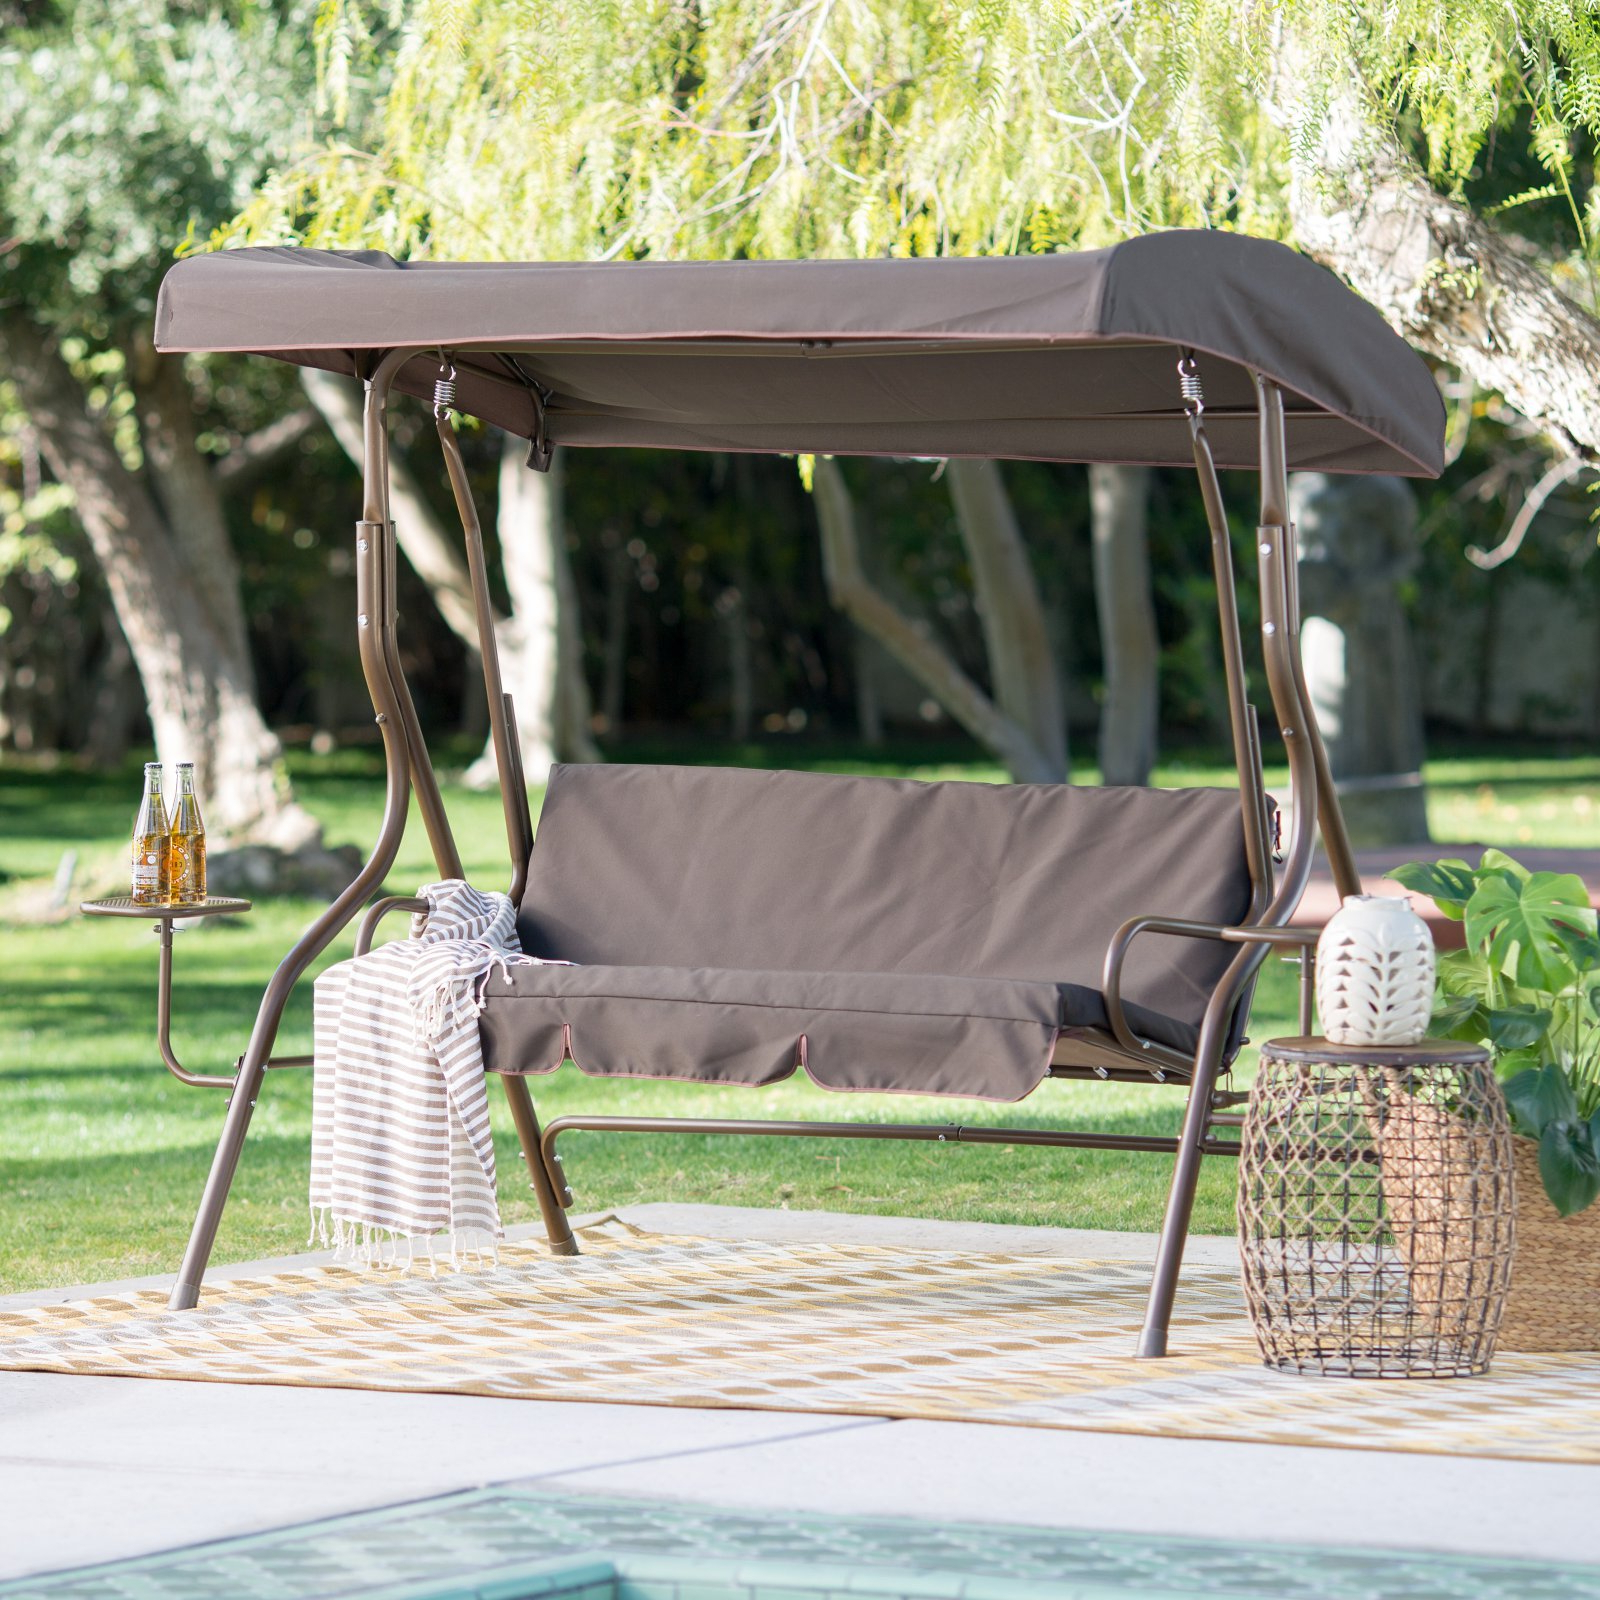 2019 Coral Coast Lakewood 2 Person Adjustable Tilt Canopy Metal Swing With Side Tables – Walmart For 2 Person Adjustable Tilt Canopy Patio Loveseat Porch Swings (View 19 of 30)